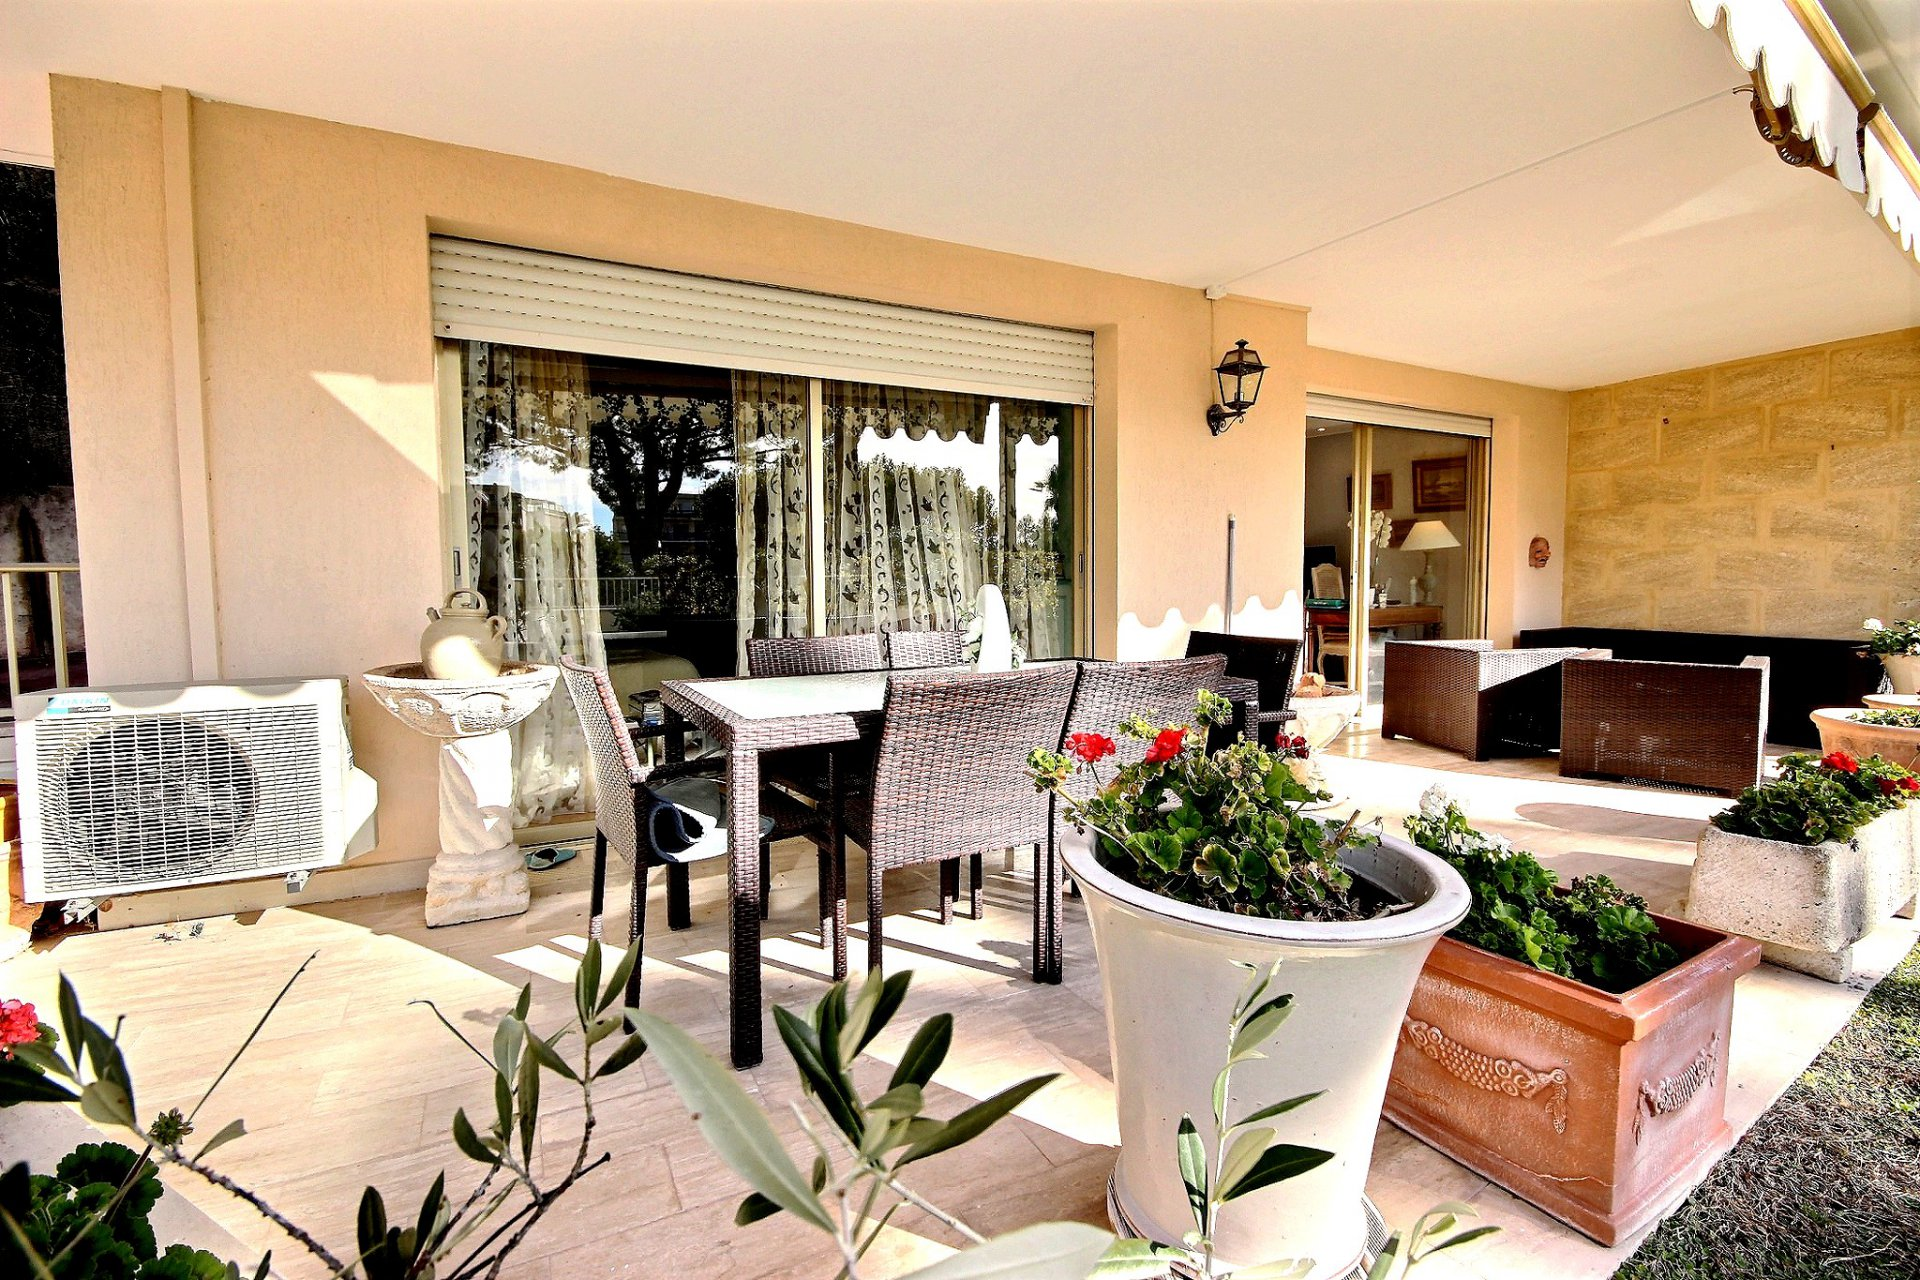 Renovation project for sale in Cannes